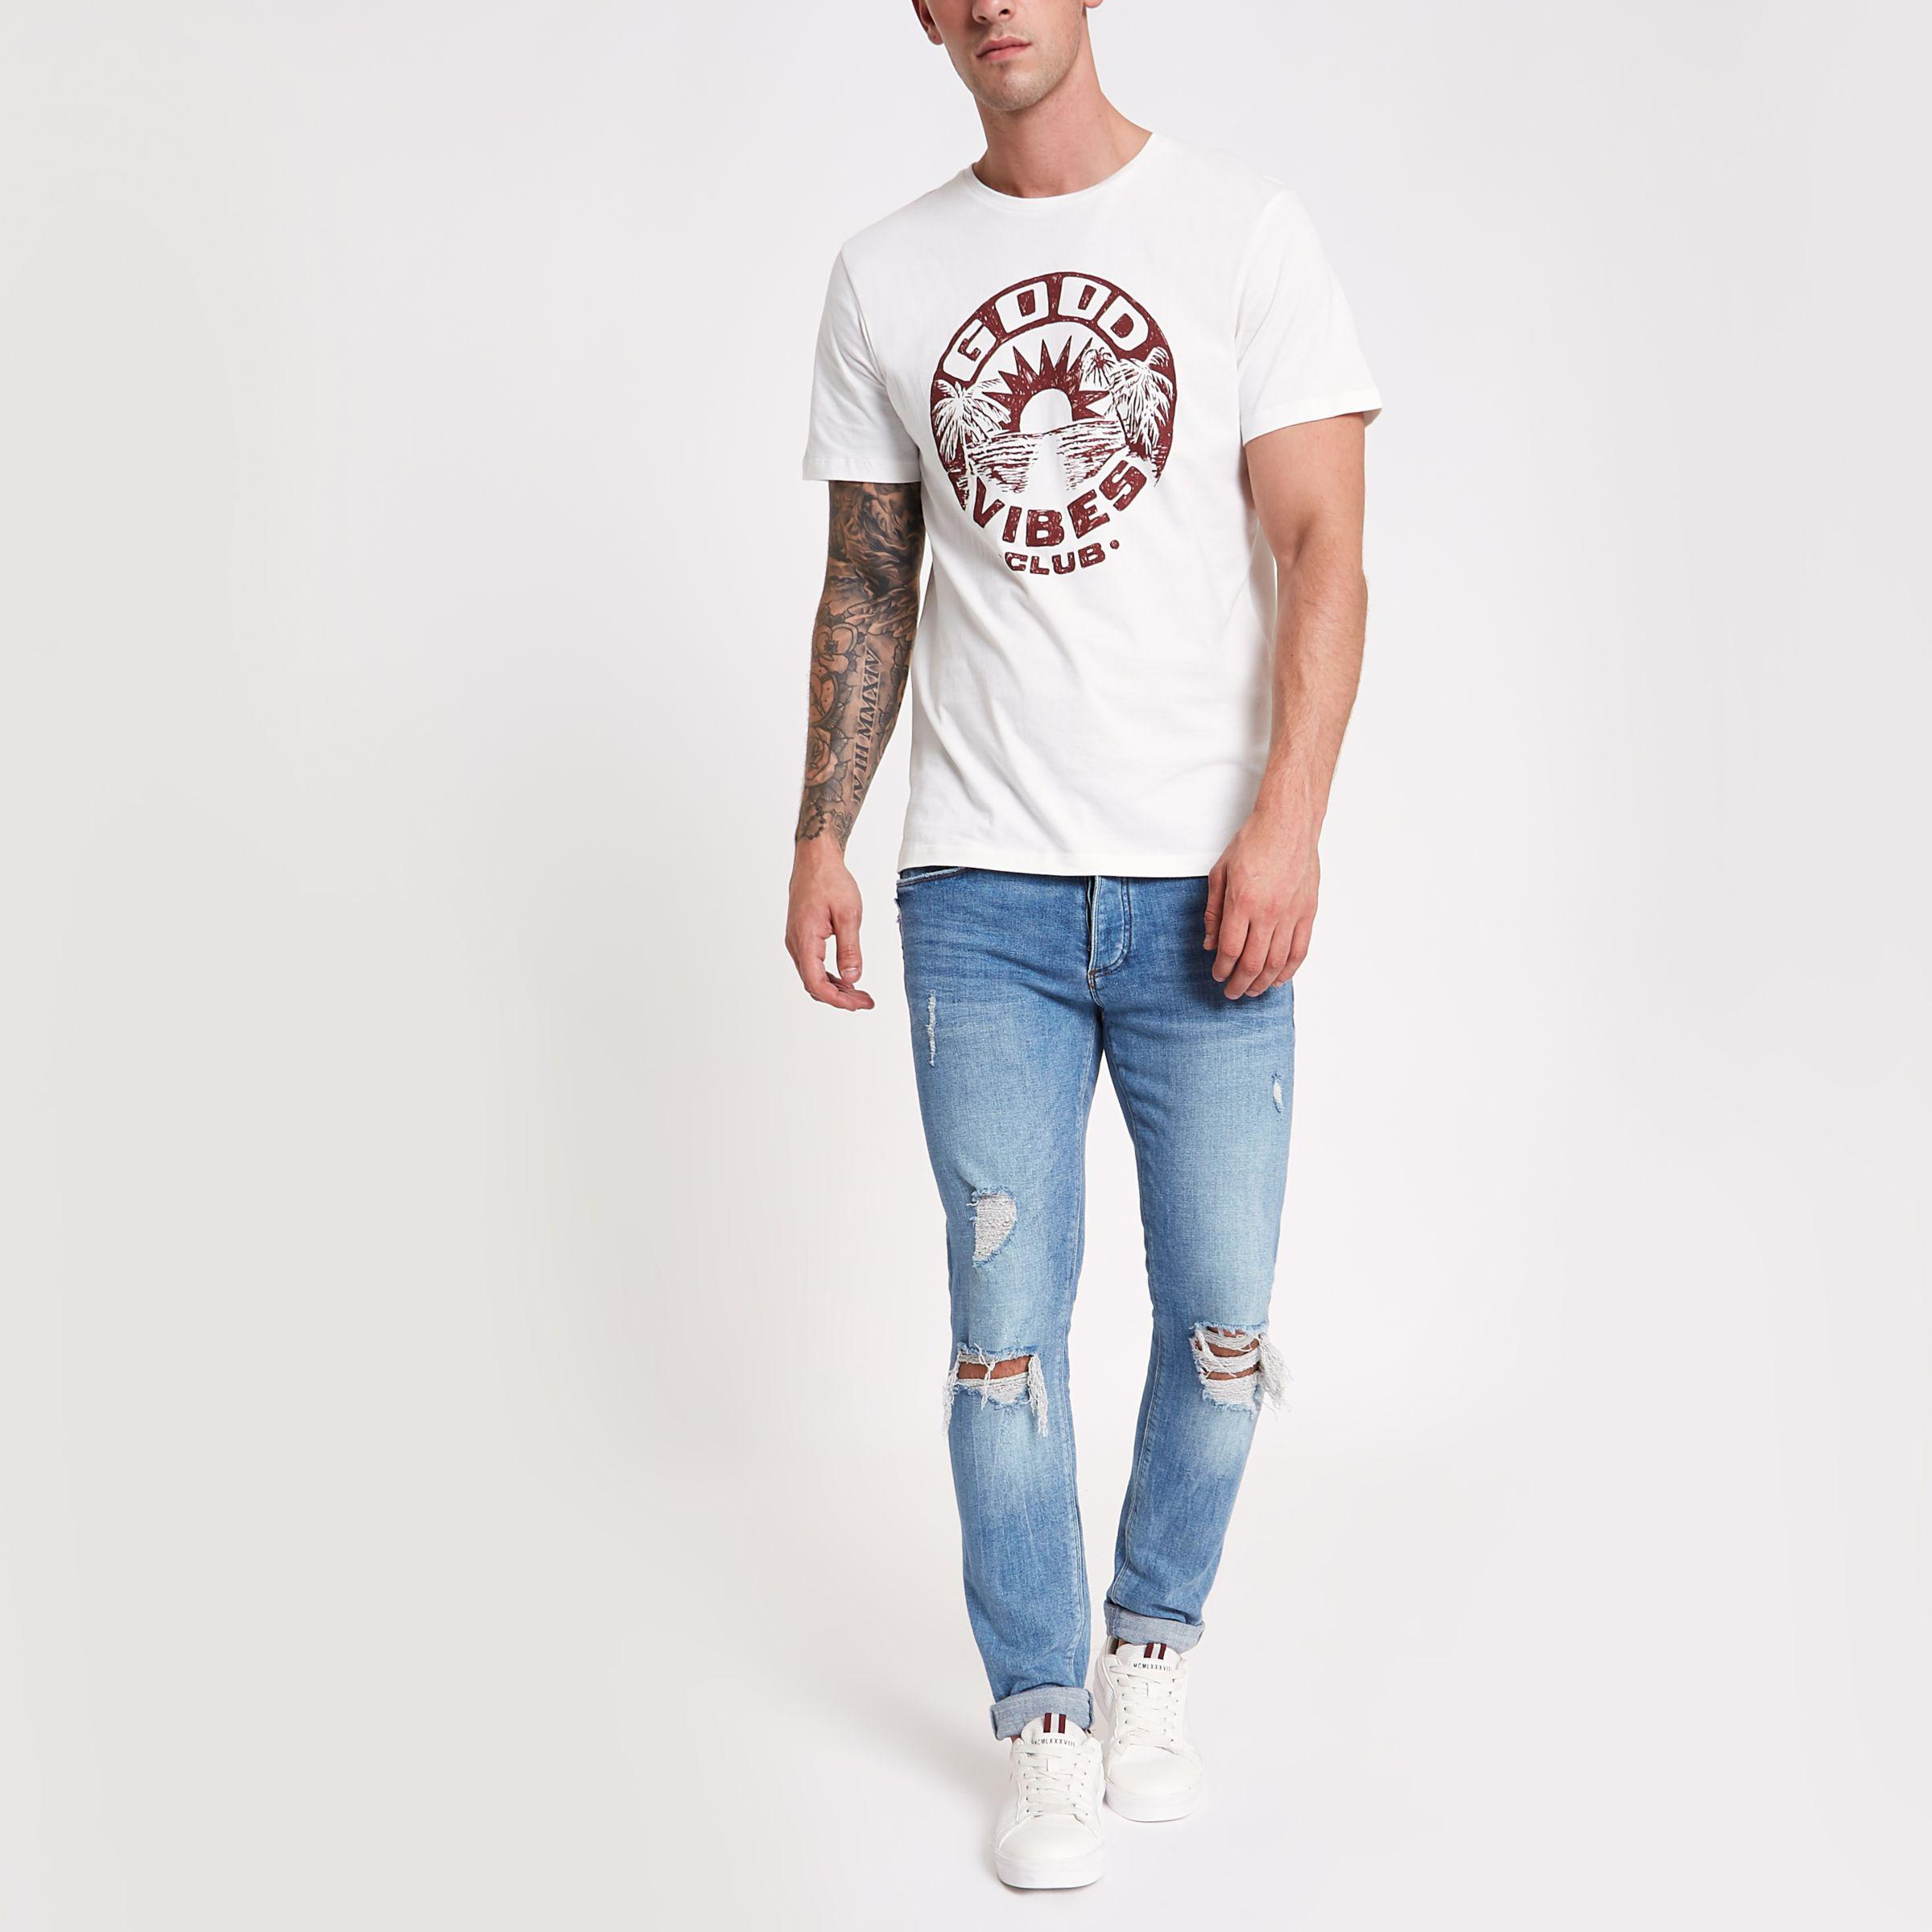 a9a726d06 River Island Jack & Jones White 'good Vibes' T-shirt in White for ...